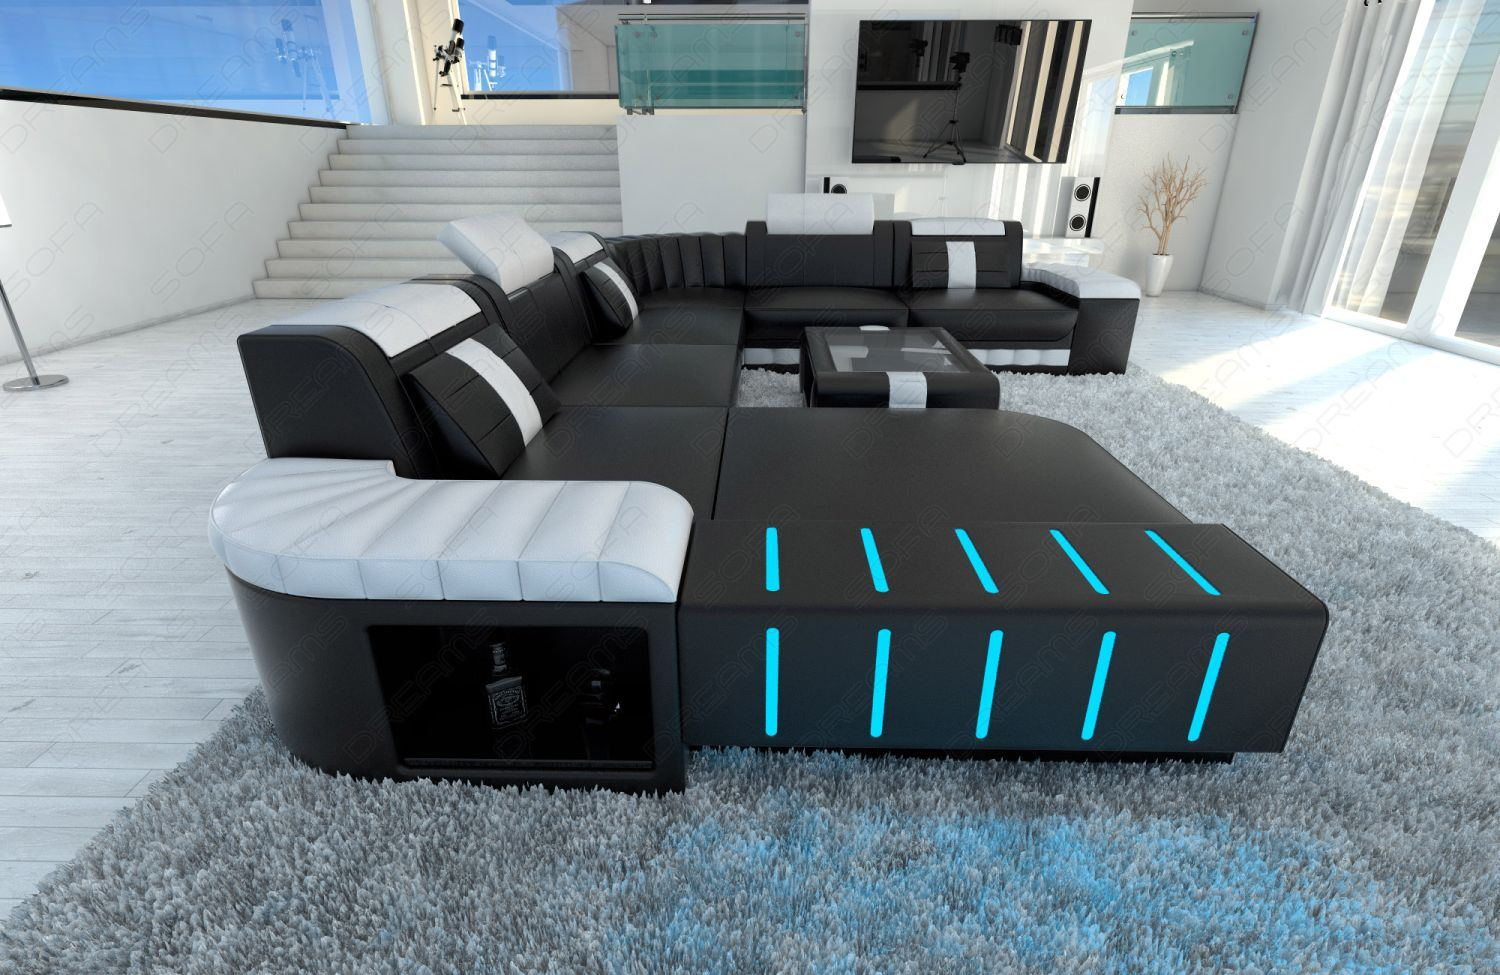 Sofa Led Xxl Sectional Sofa Bellagio Led U Shaped Black White | Ebay